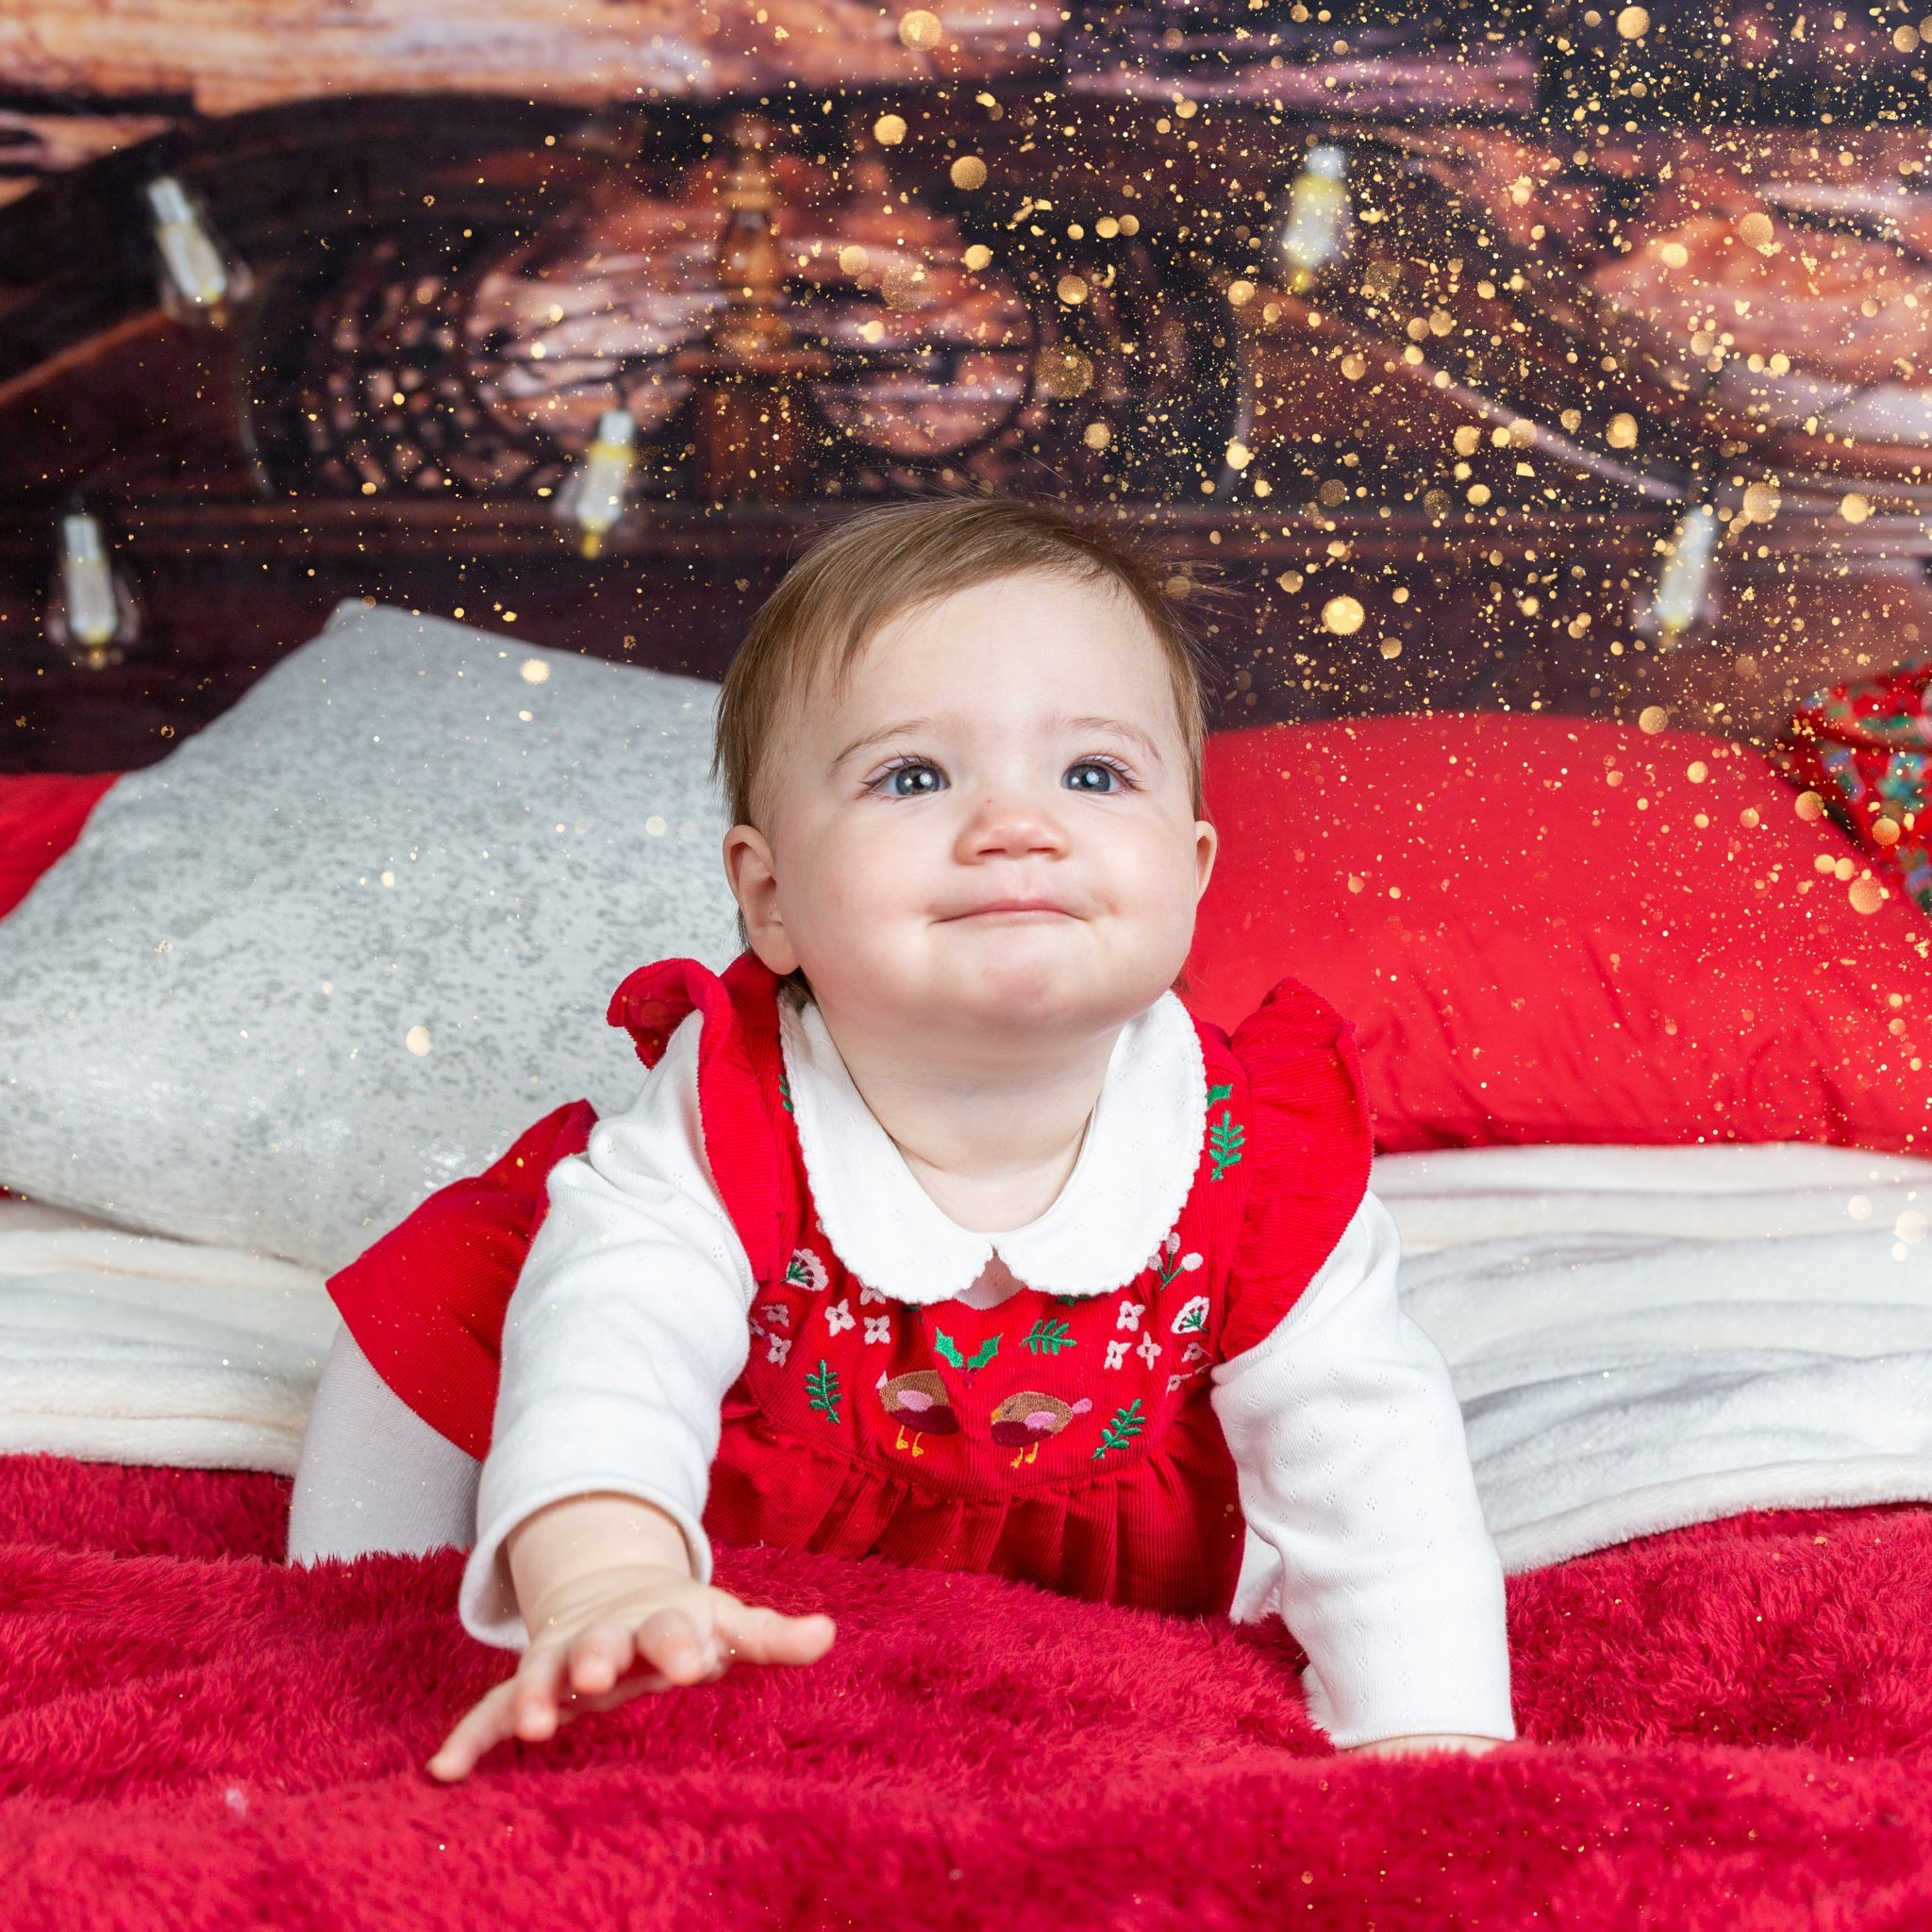 baby girl on christmas bed